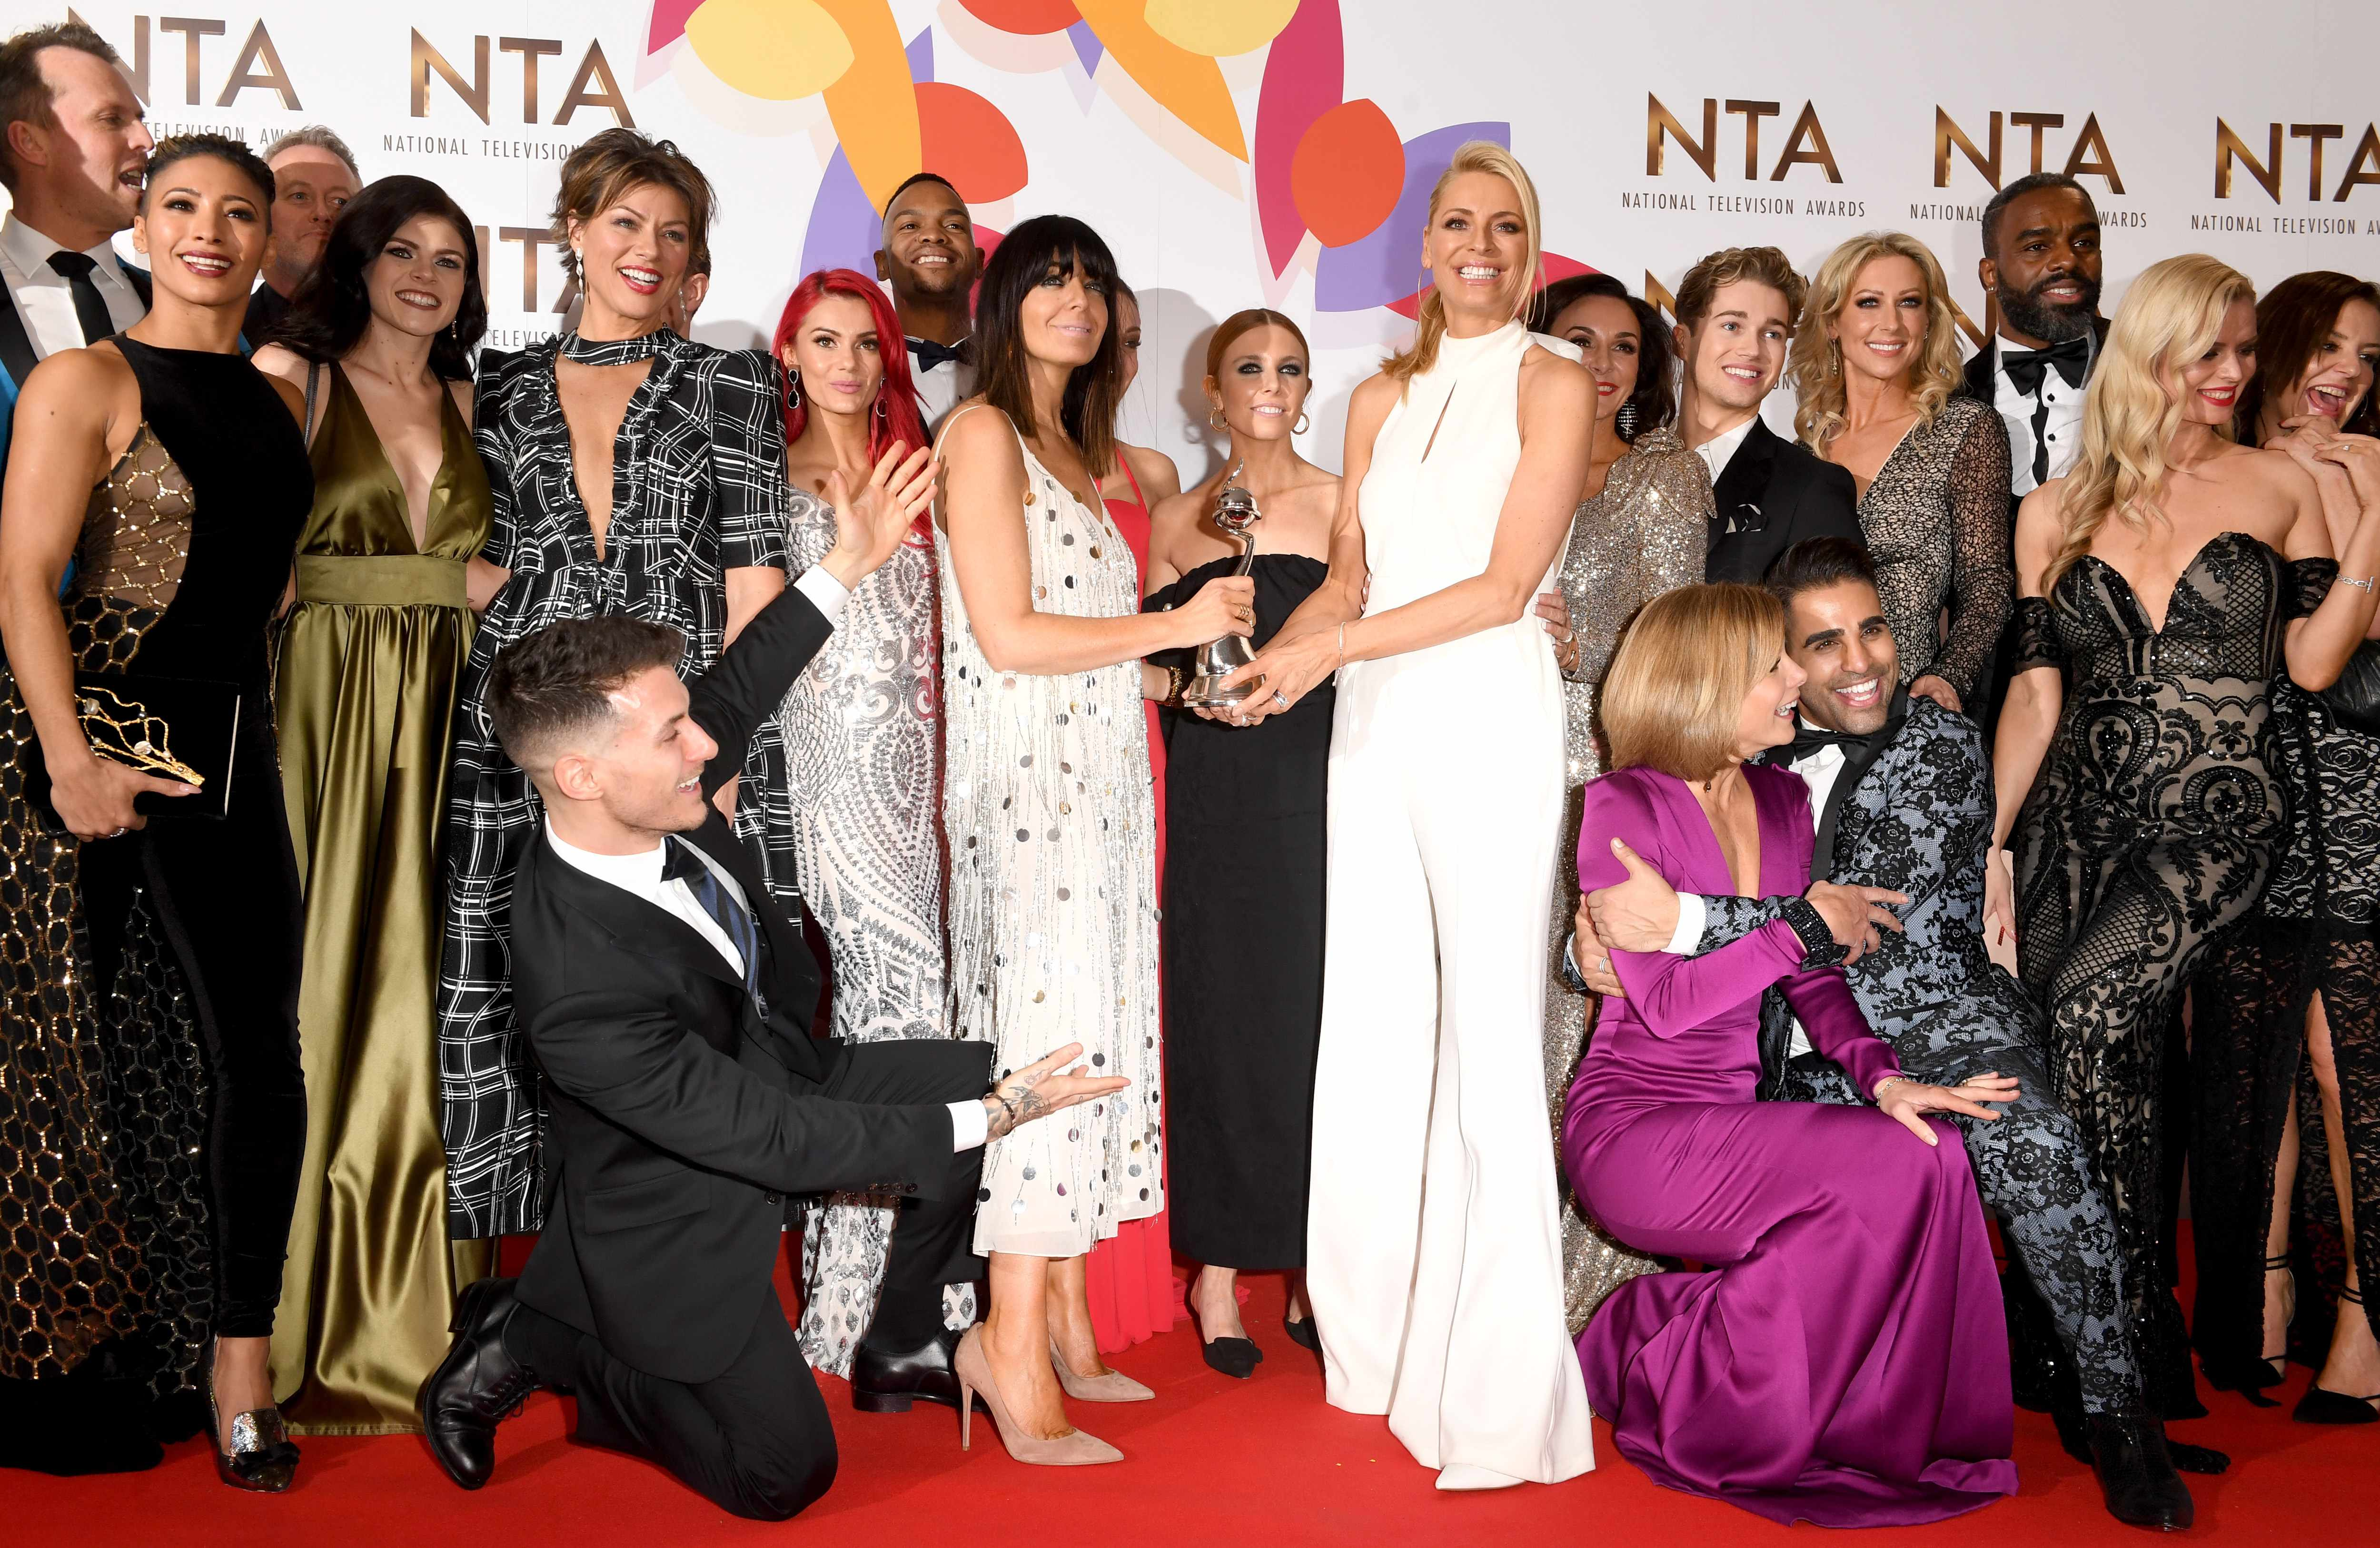 National Television Awards 2019 - Winners Room